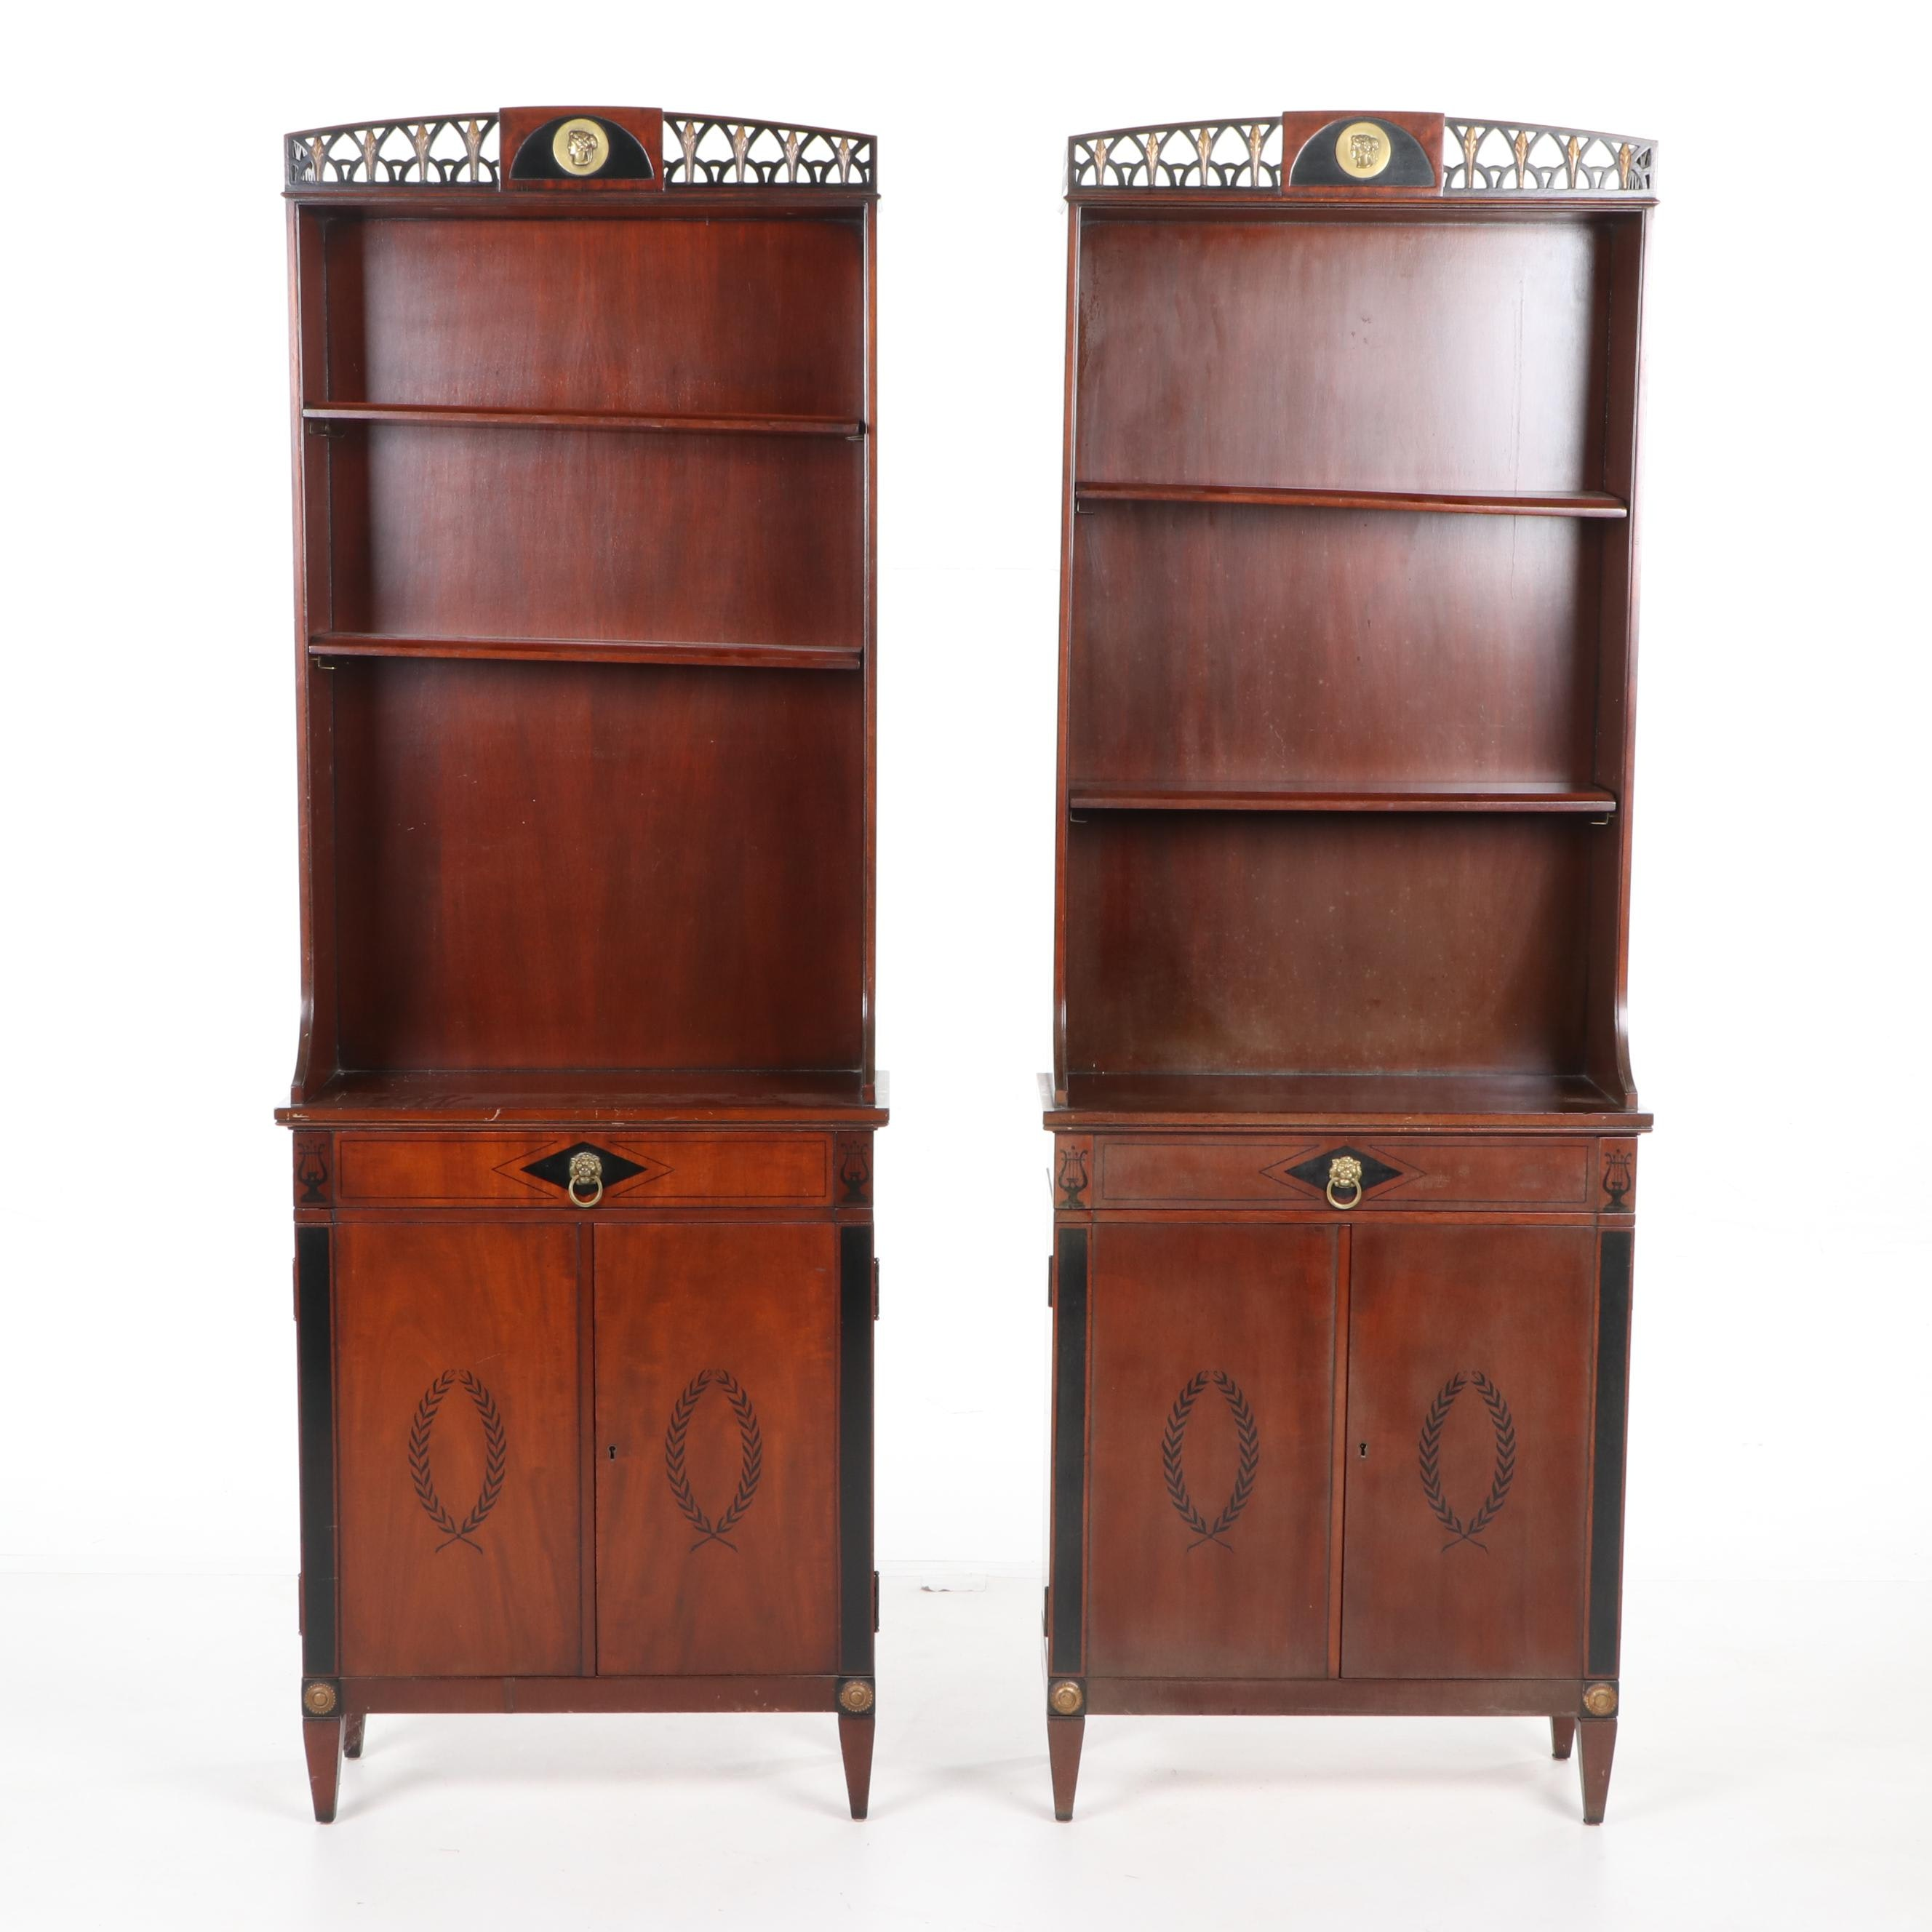 Neoclassical Style Mahogany Cabinets by Robert W. Irwin Co., Early 20th Century